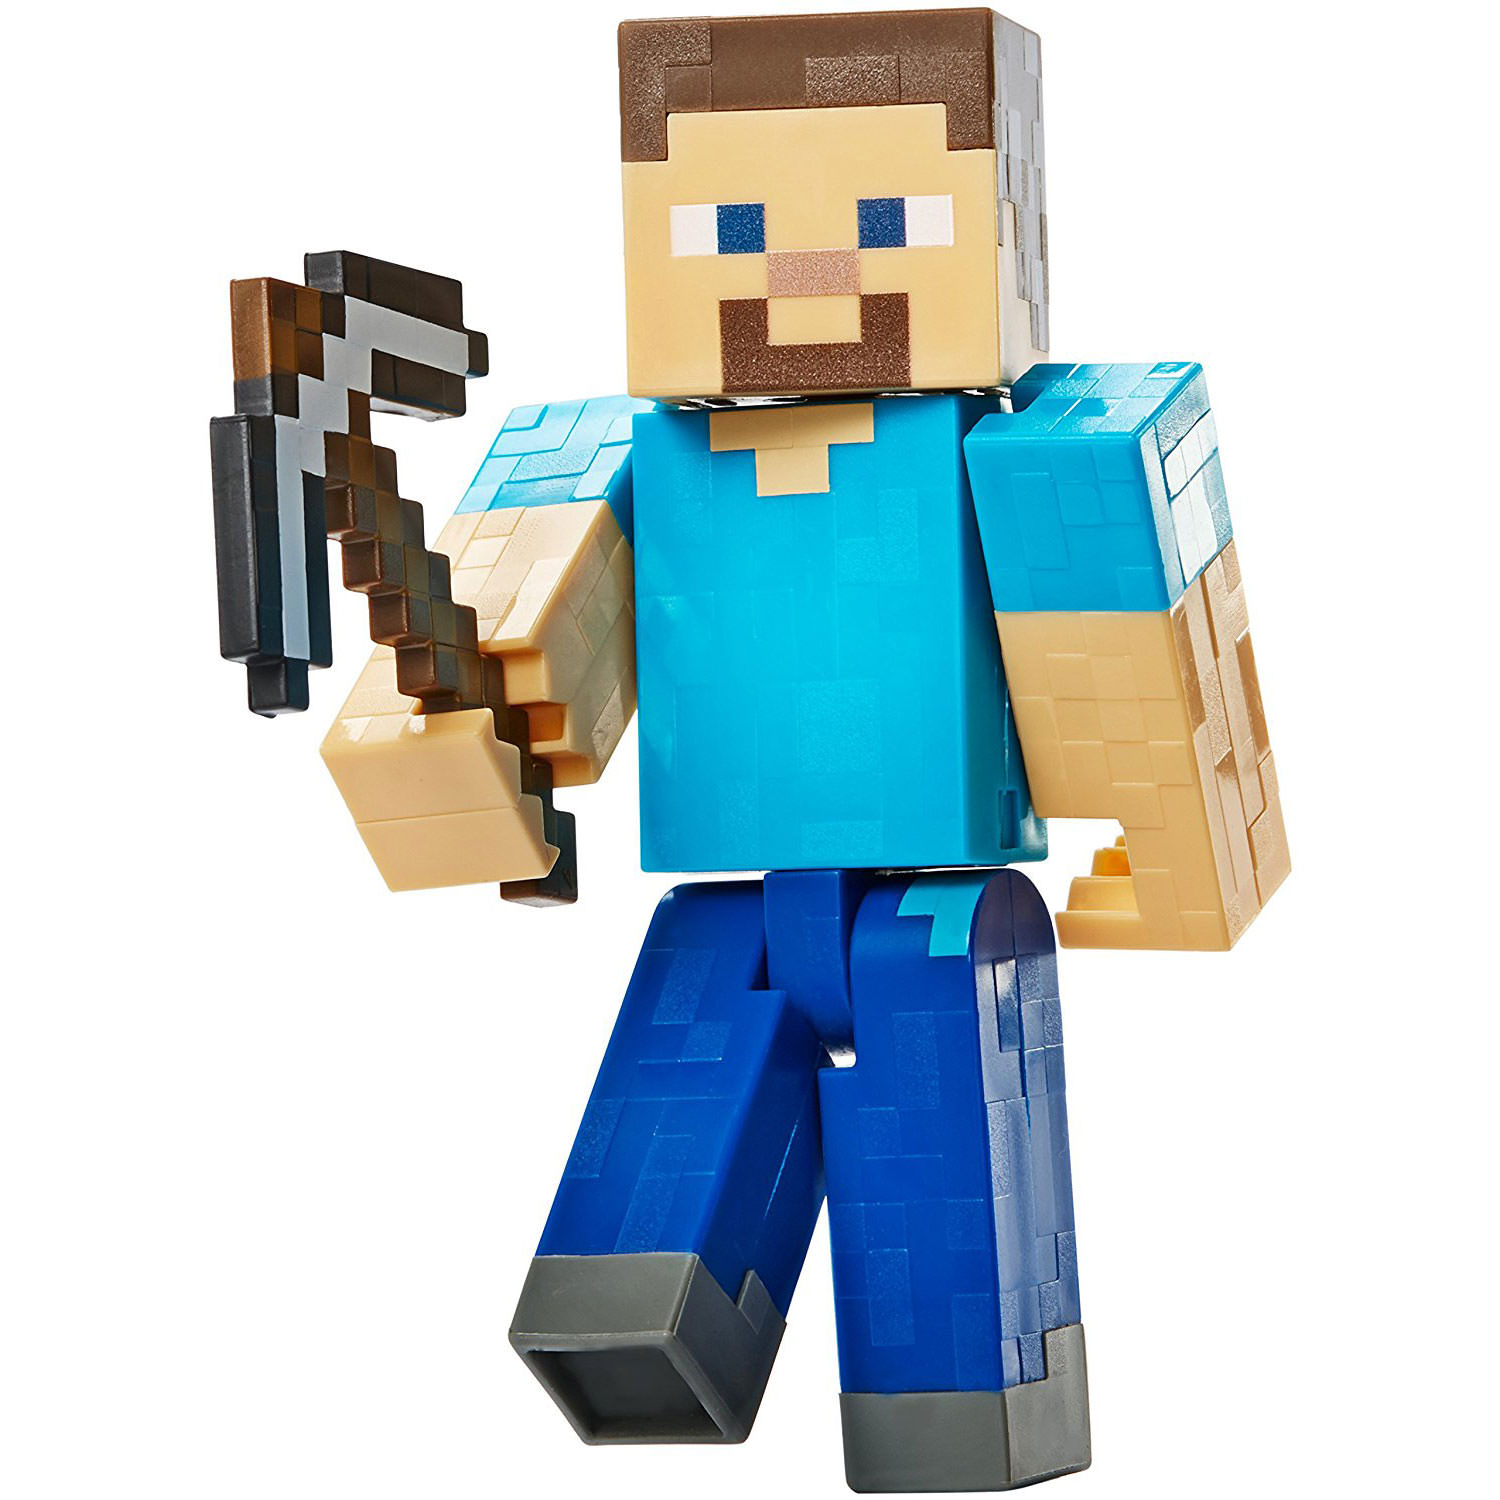 "Minecraft Mining Steve with Pickaxe 5"" Figure at Hobby"